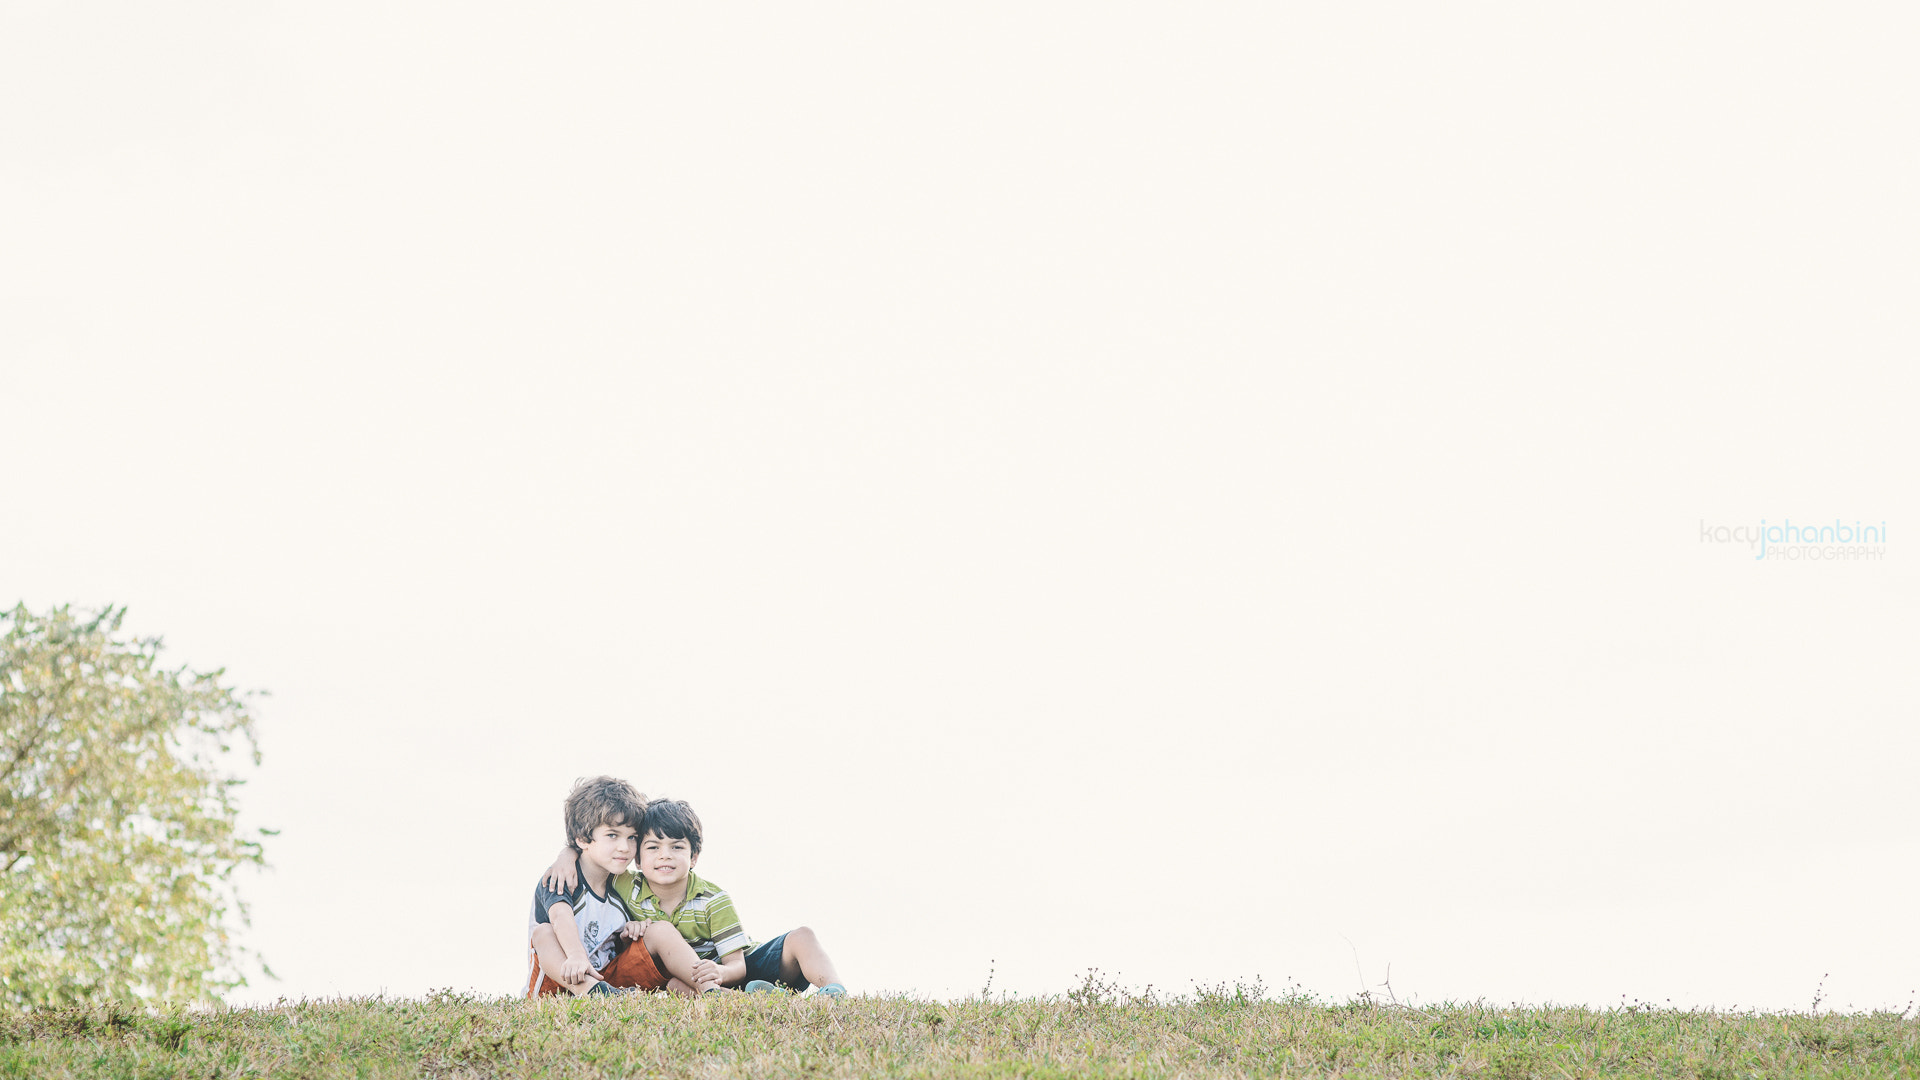 Photograph {brothers} by kacy jahanbini on 500px